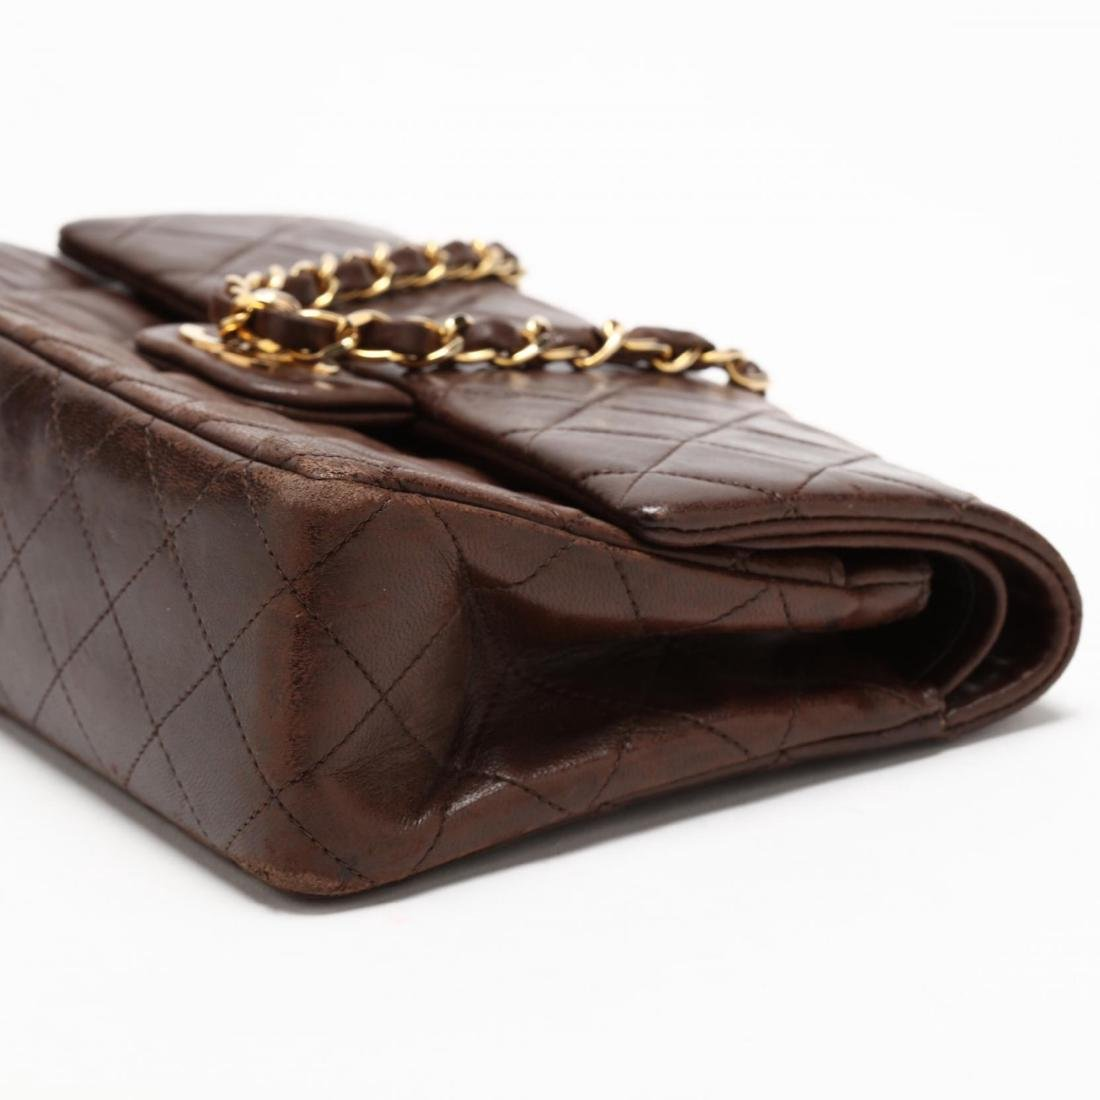 Classic Small Double Flap Shoulder Bag, Chanel - 4